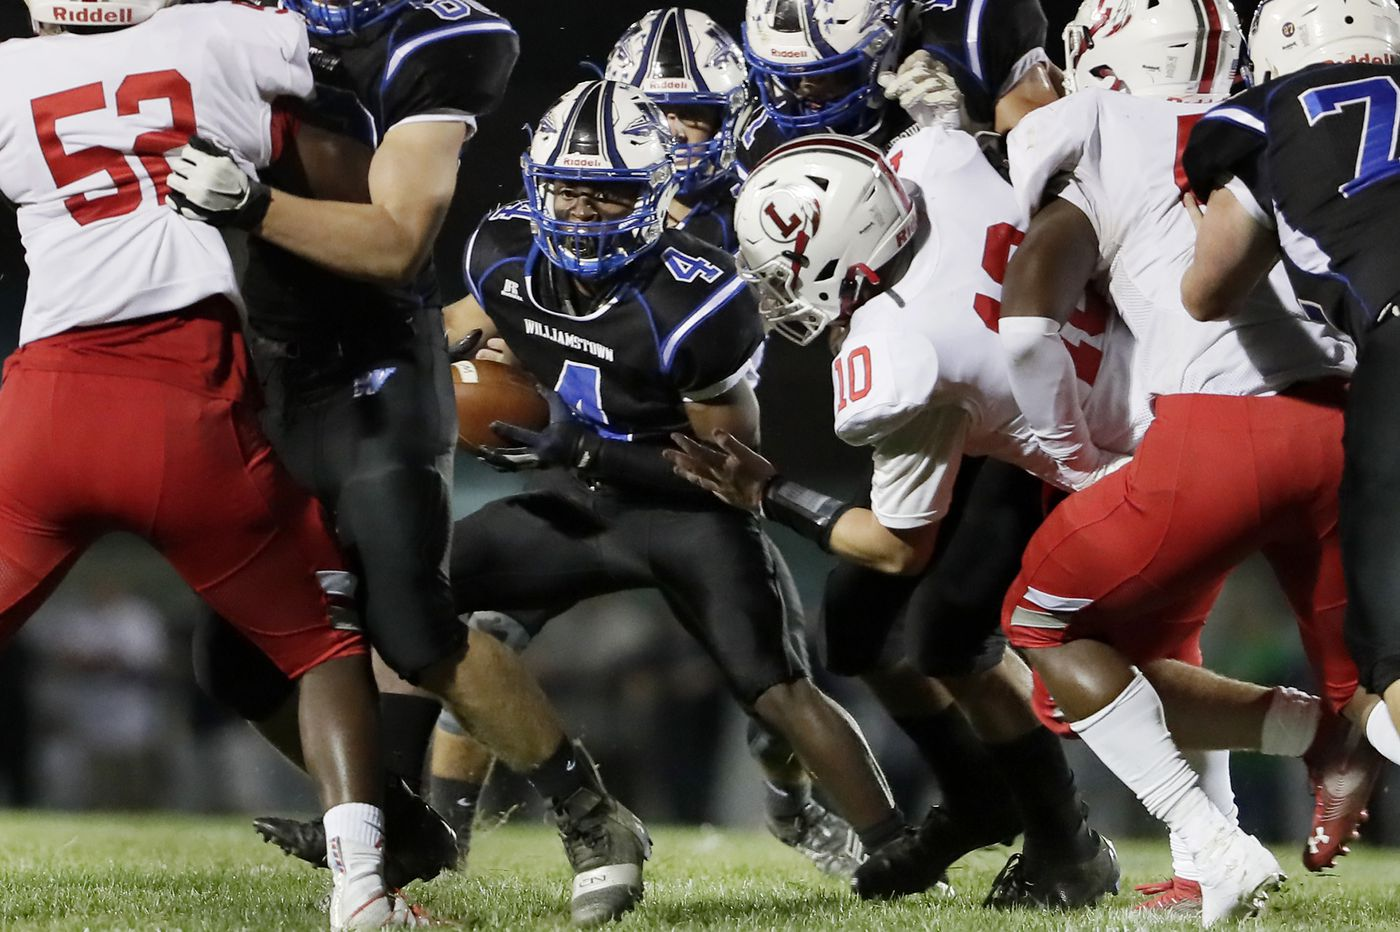 South Jersey Football Rankings: No. 1 Lenape, No. 3 Williamstown close on epic rematch